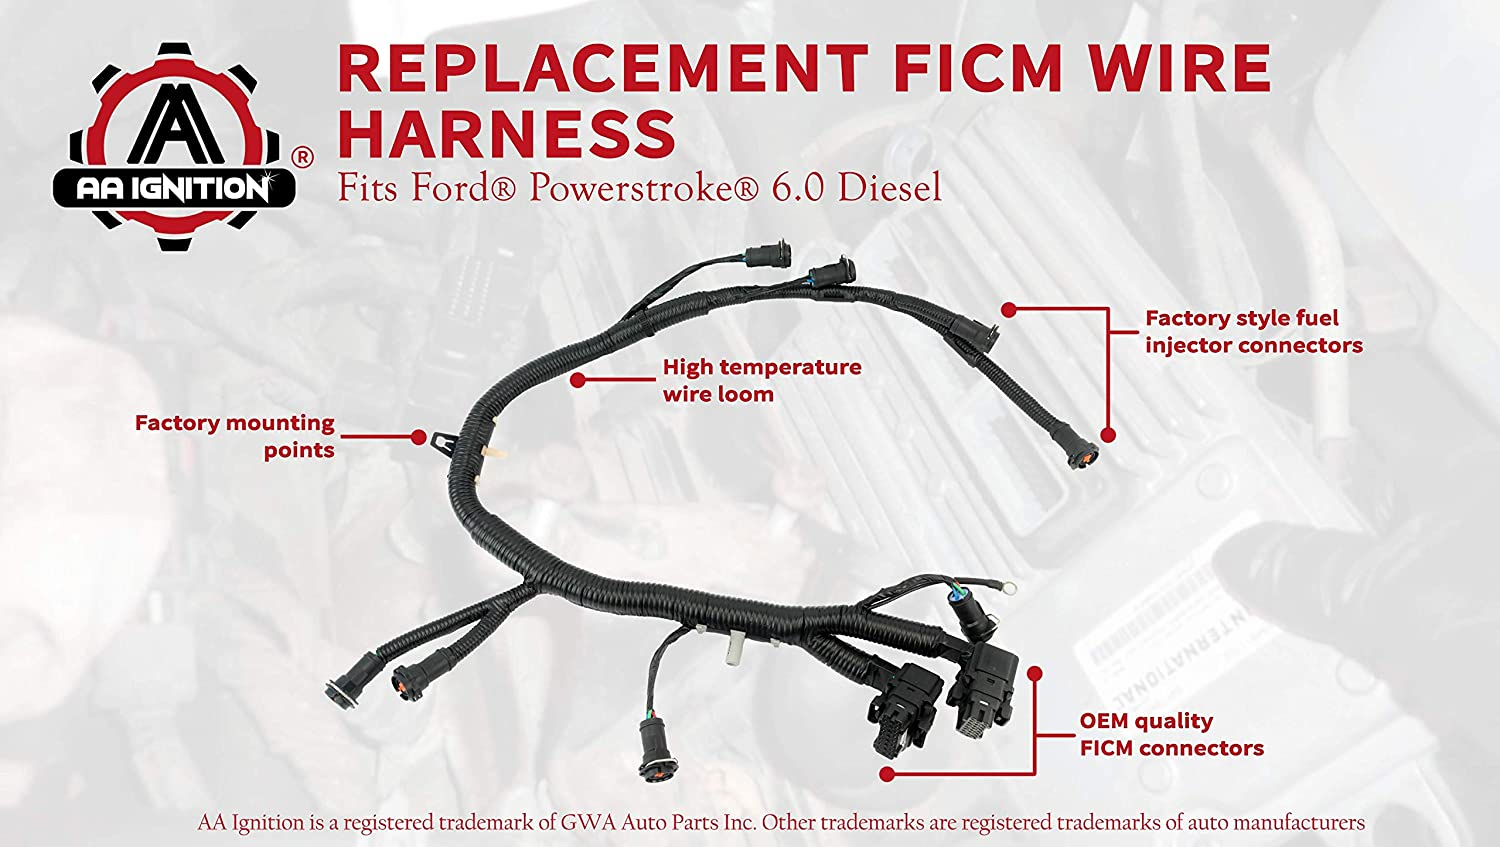 Ficm Engine Fuel Injector Complete Wire Harness Parts Replaces Part 5c3z9d930a Fits Ford Powerstroke 60l Diesel 2003 2004 2005 2006